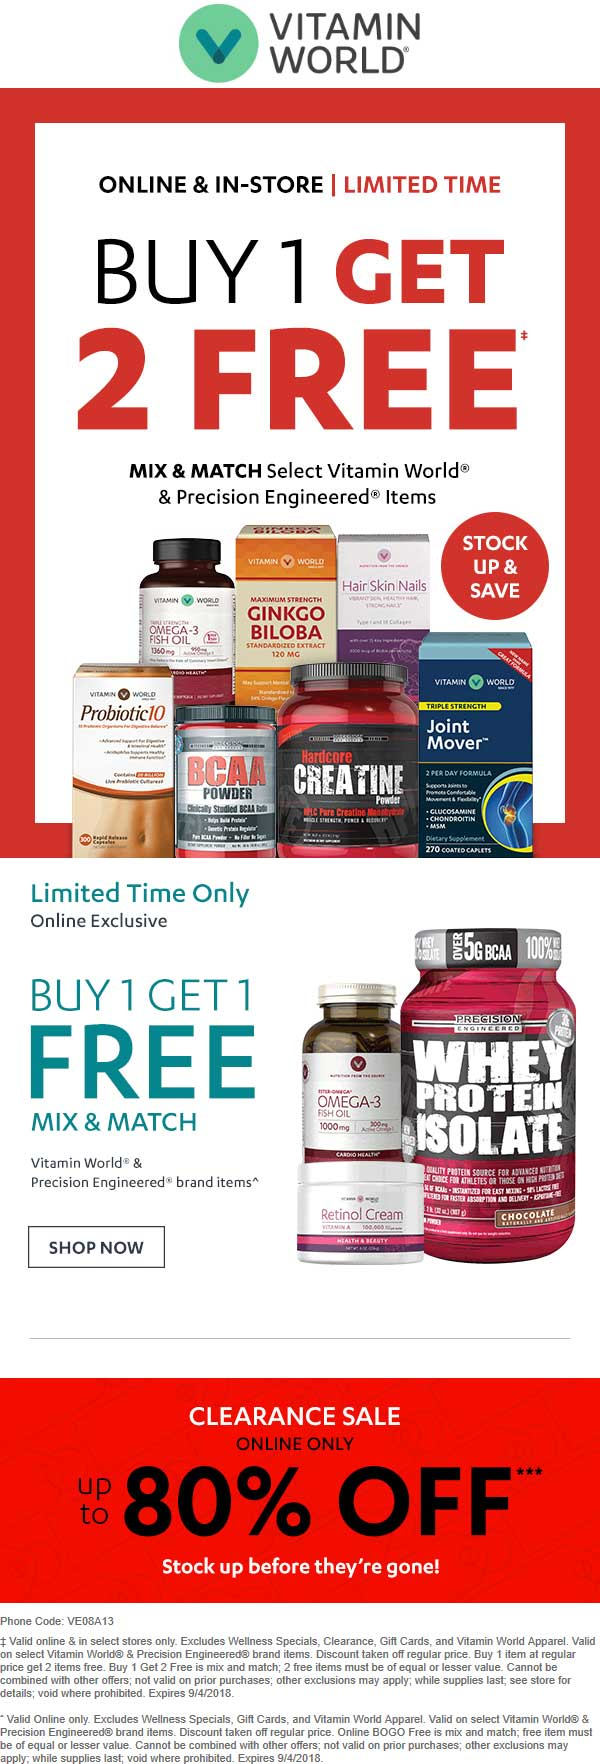 Vitamin World Coupon May 2019 3-for-1 on various store brand at Vitamin World, or online via promo code VE08A13